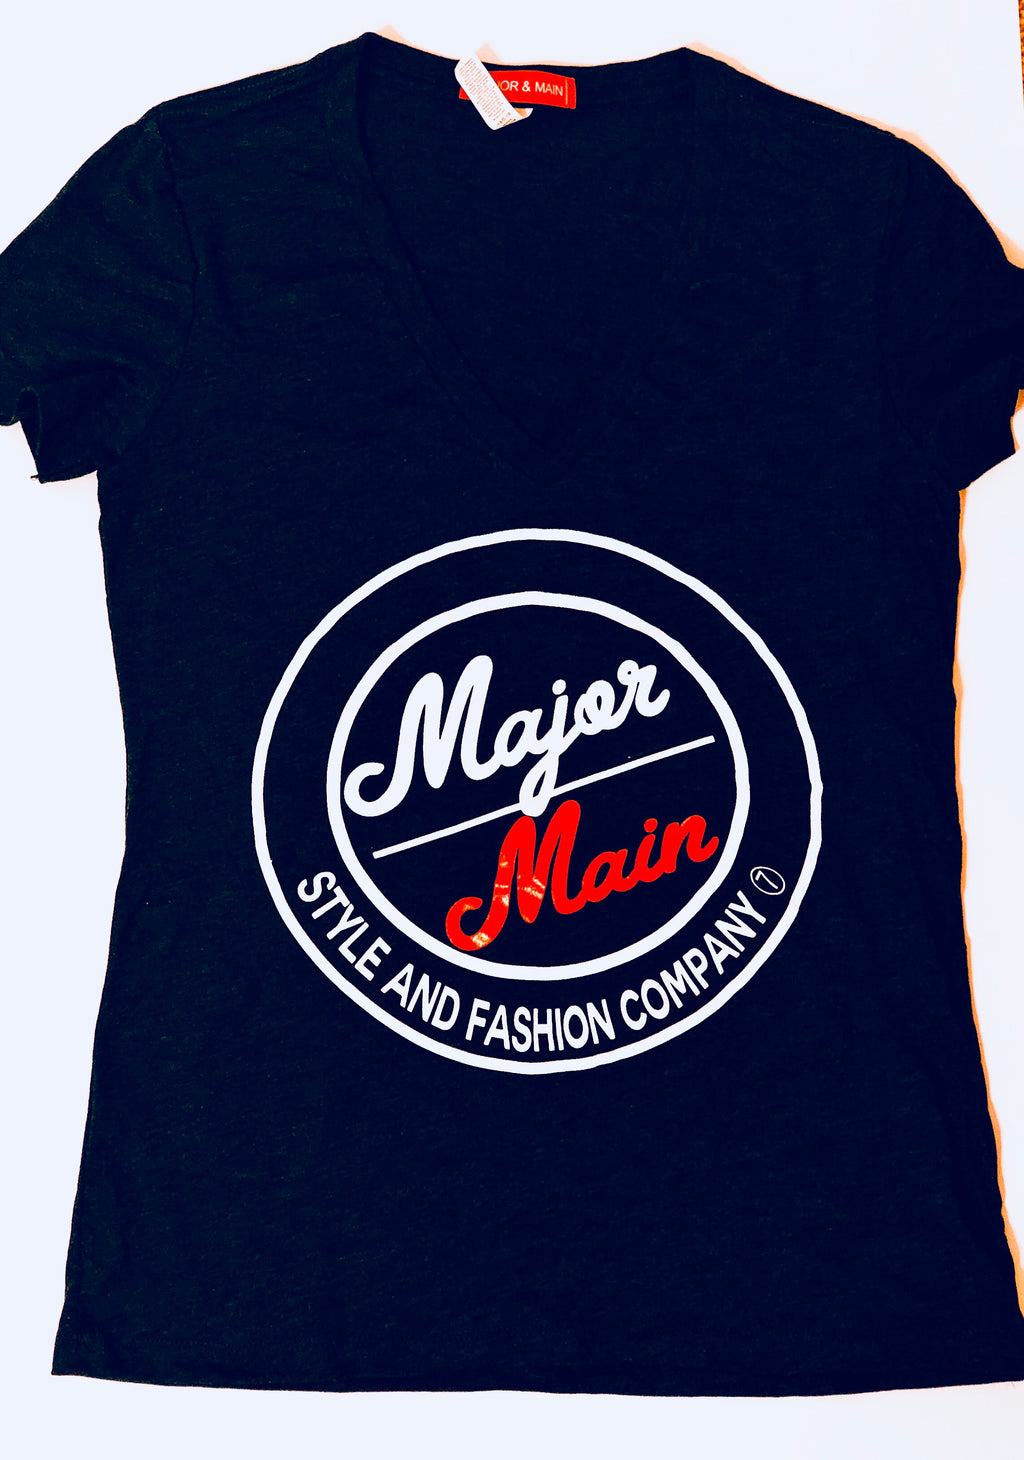 Major & Main: Style and Fashion Company-Logo Shirt